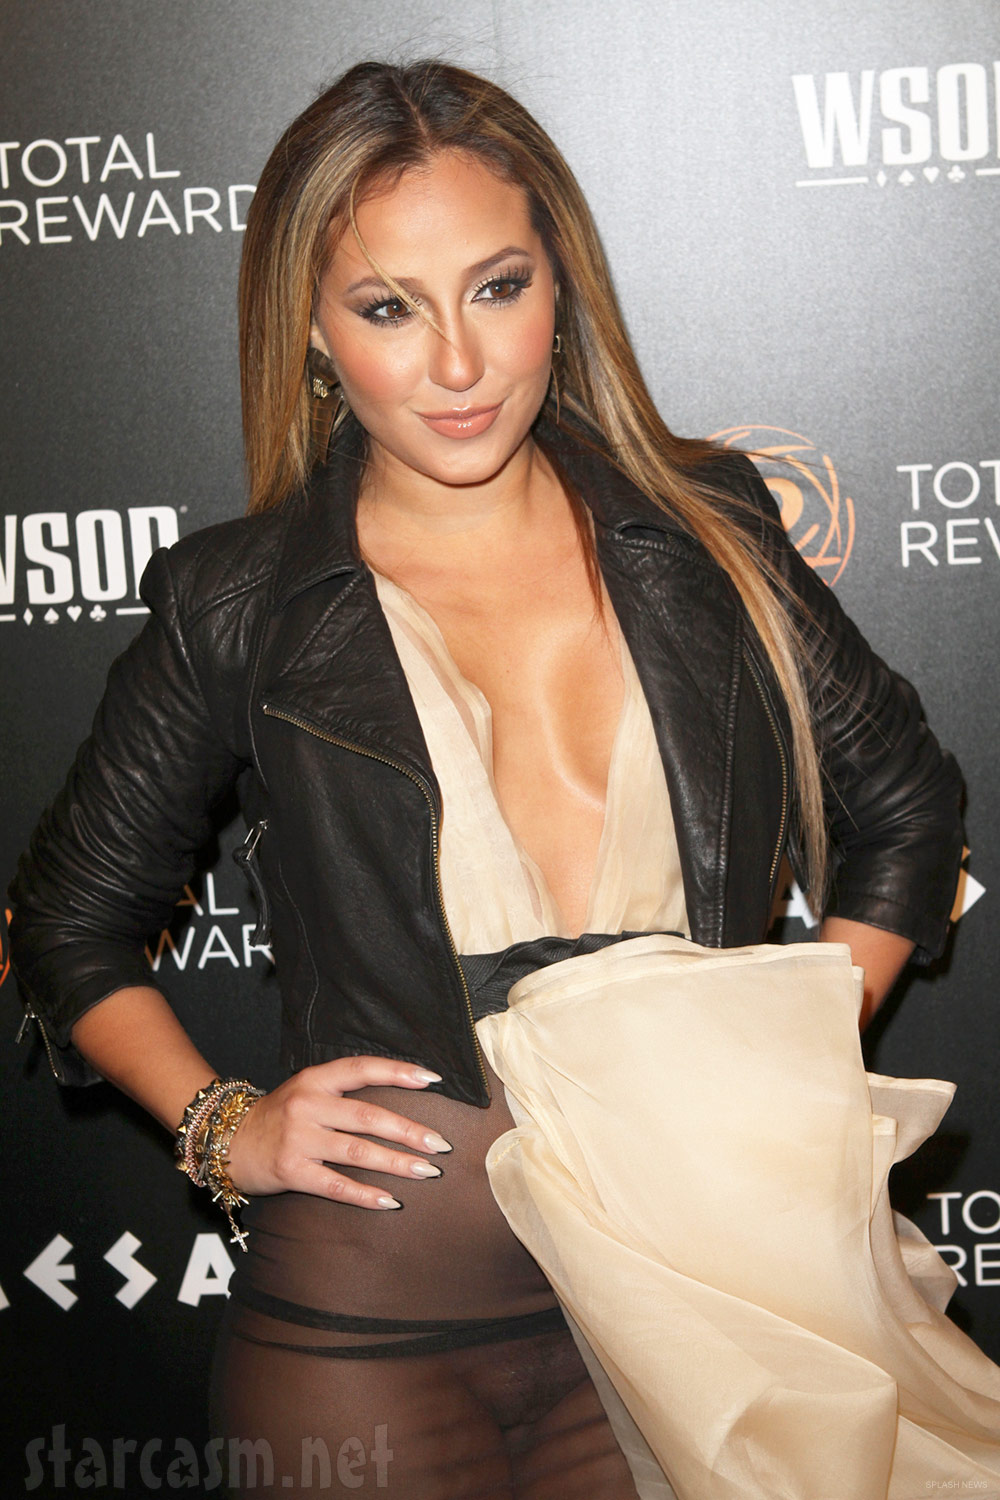 PHOTOS Adrienne Bailon suffers wardrobe malfunction, unleashes her